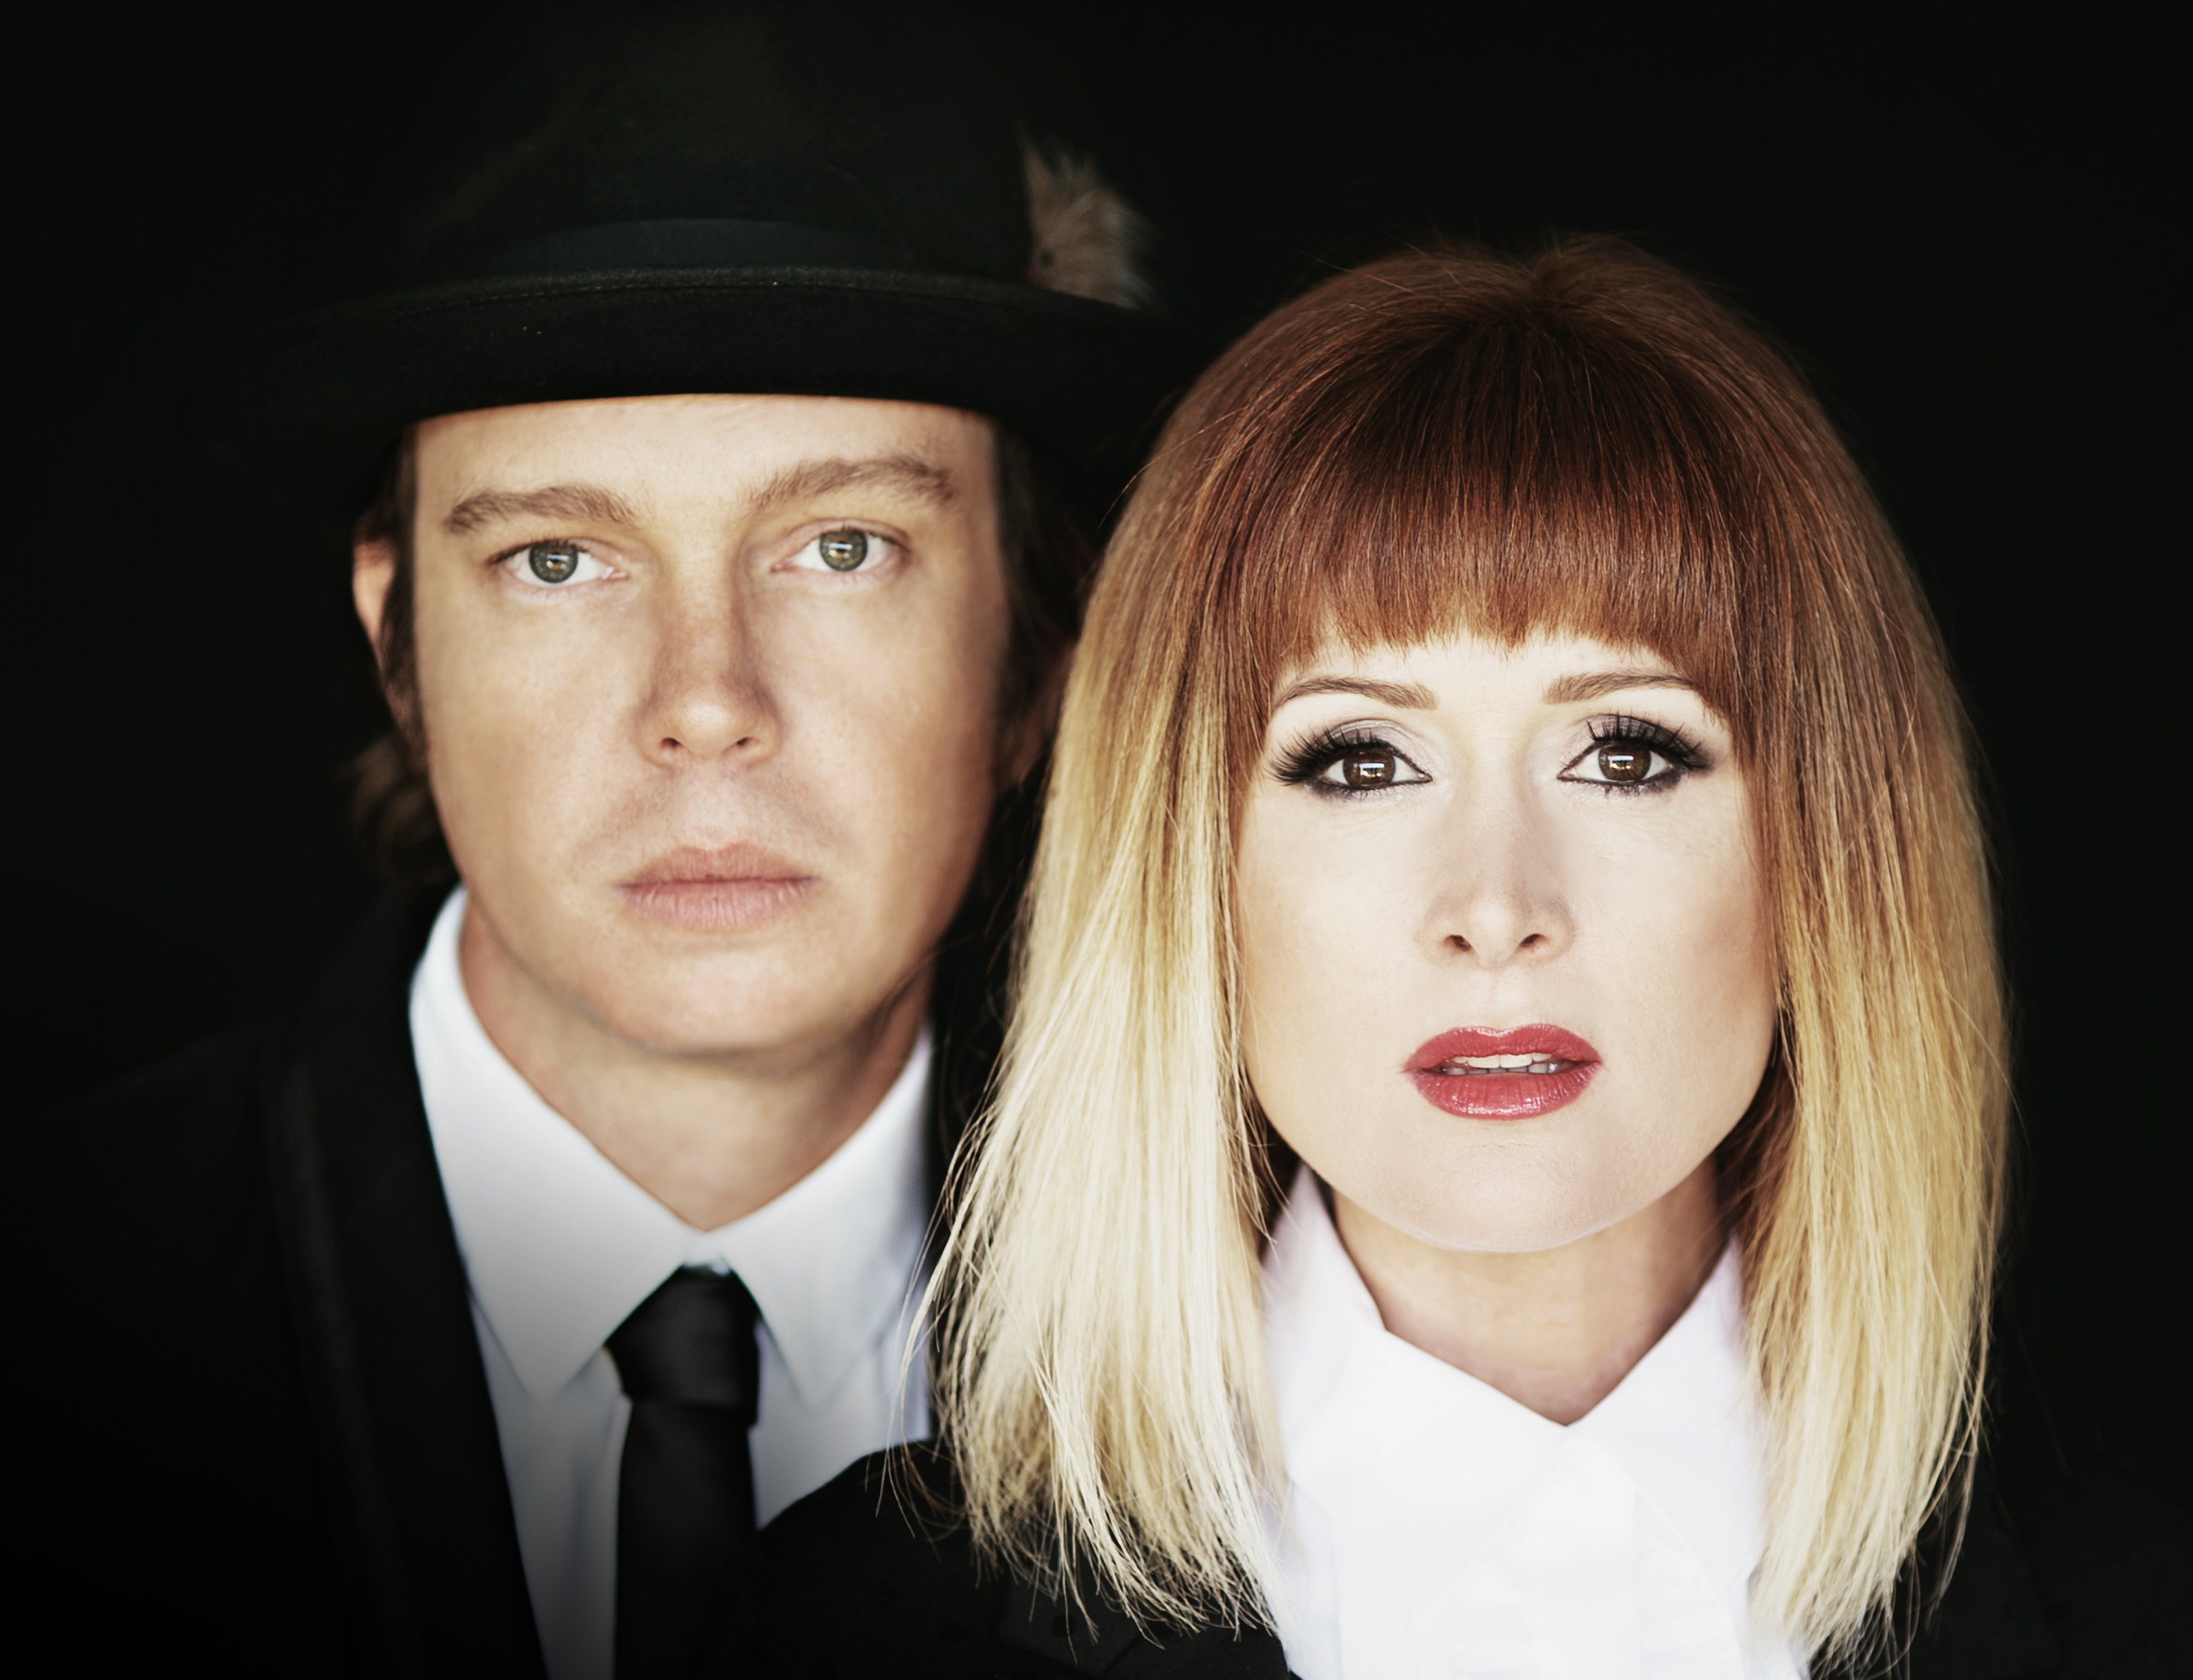 MULTI-AWARD WINNING DUO O'SHEA RELEASE THEIR NEW ALBUM '61-615′ OUT NOW!